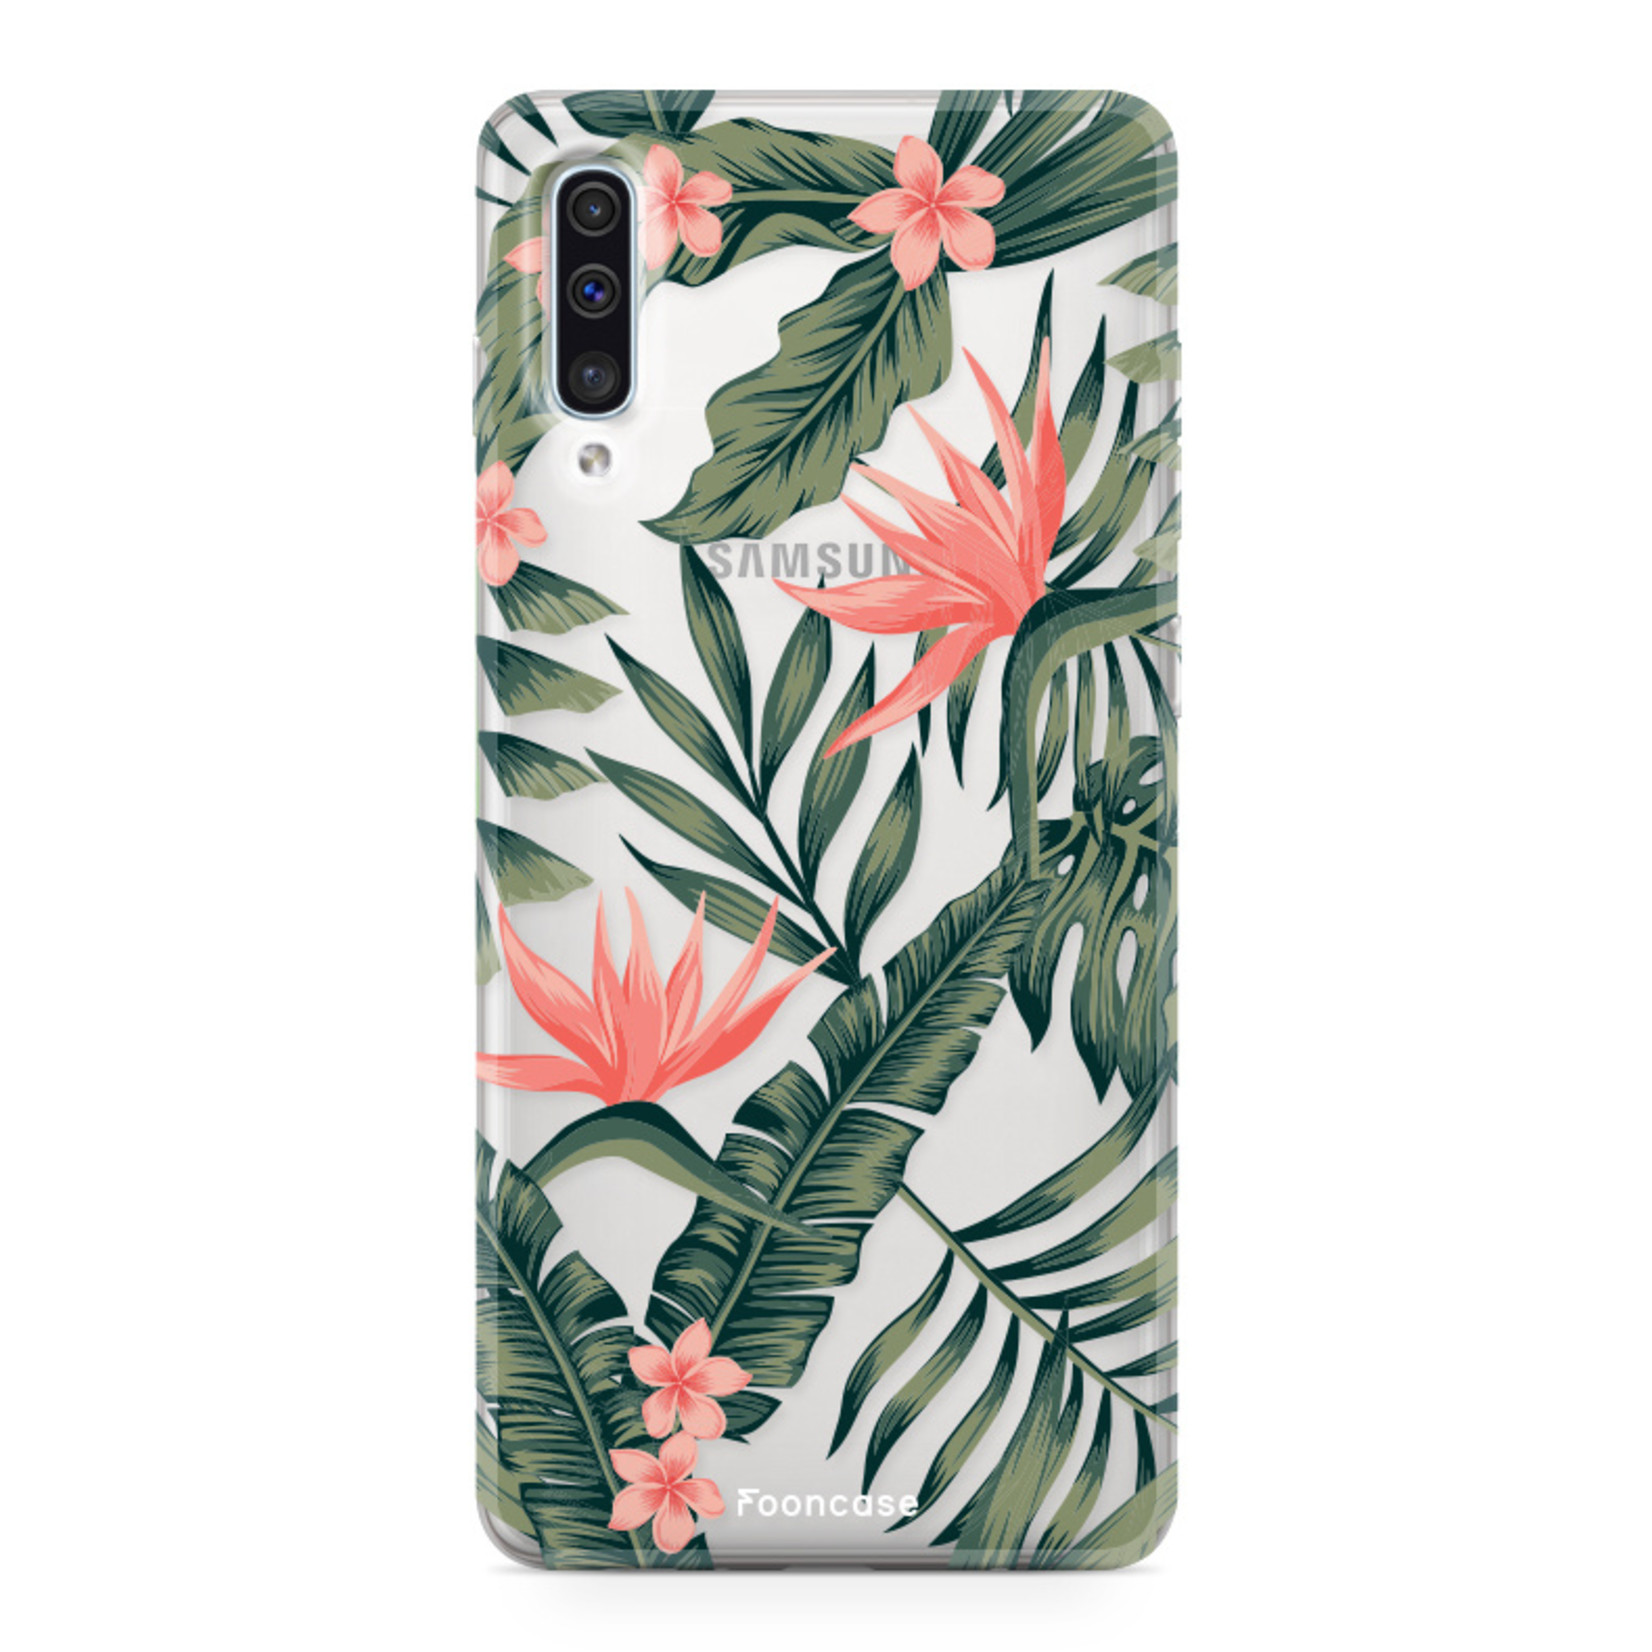 FOONCASE Samsung Galaxy A50 hoesje TPU Soft Case - Back Cover - Tropical Desire / Bladeren / Roze